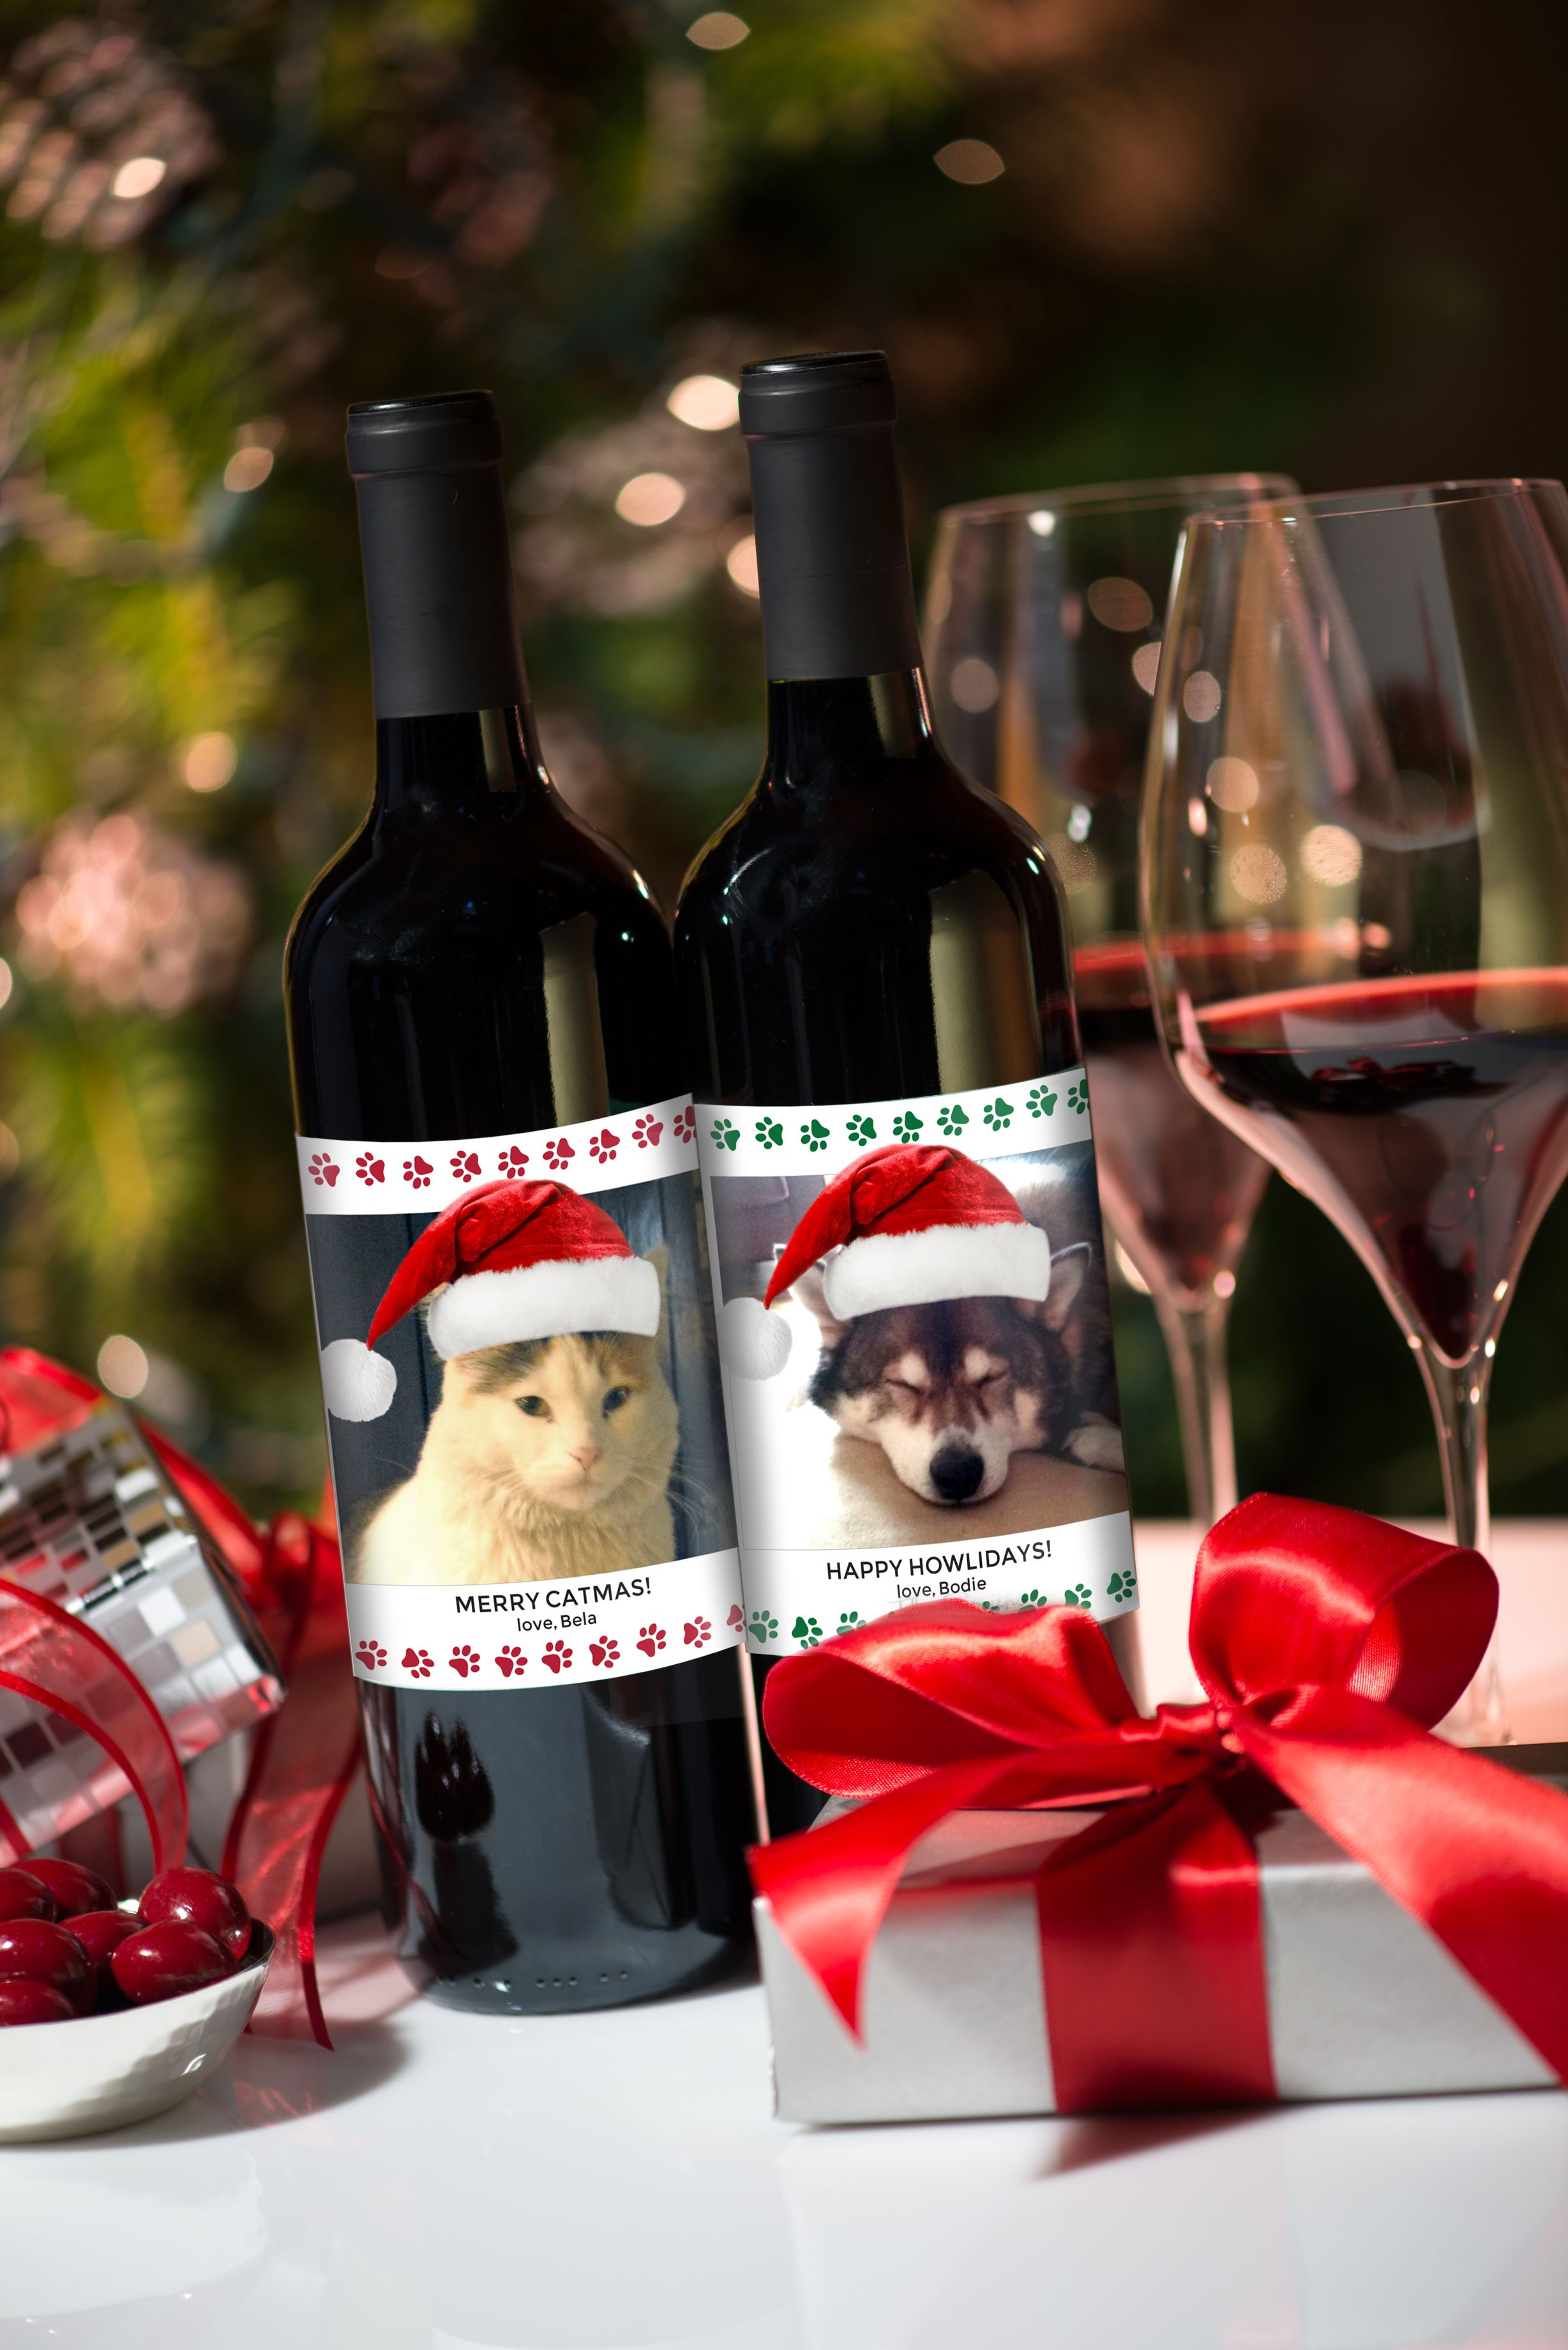 Last Chance To Petyourwine And Put Your Pet On A Wine Label Order It Here Http Bit Ly 2gintp4 Wine Label Wine Pets